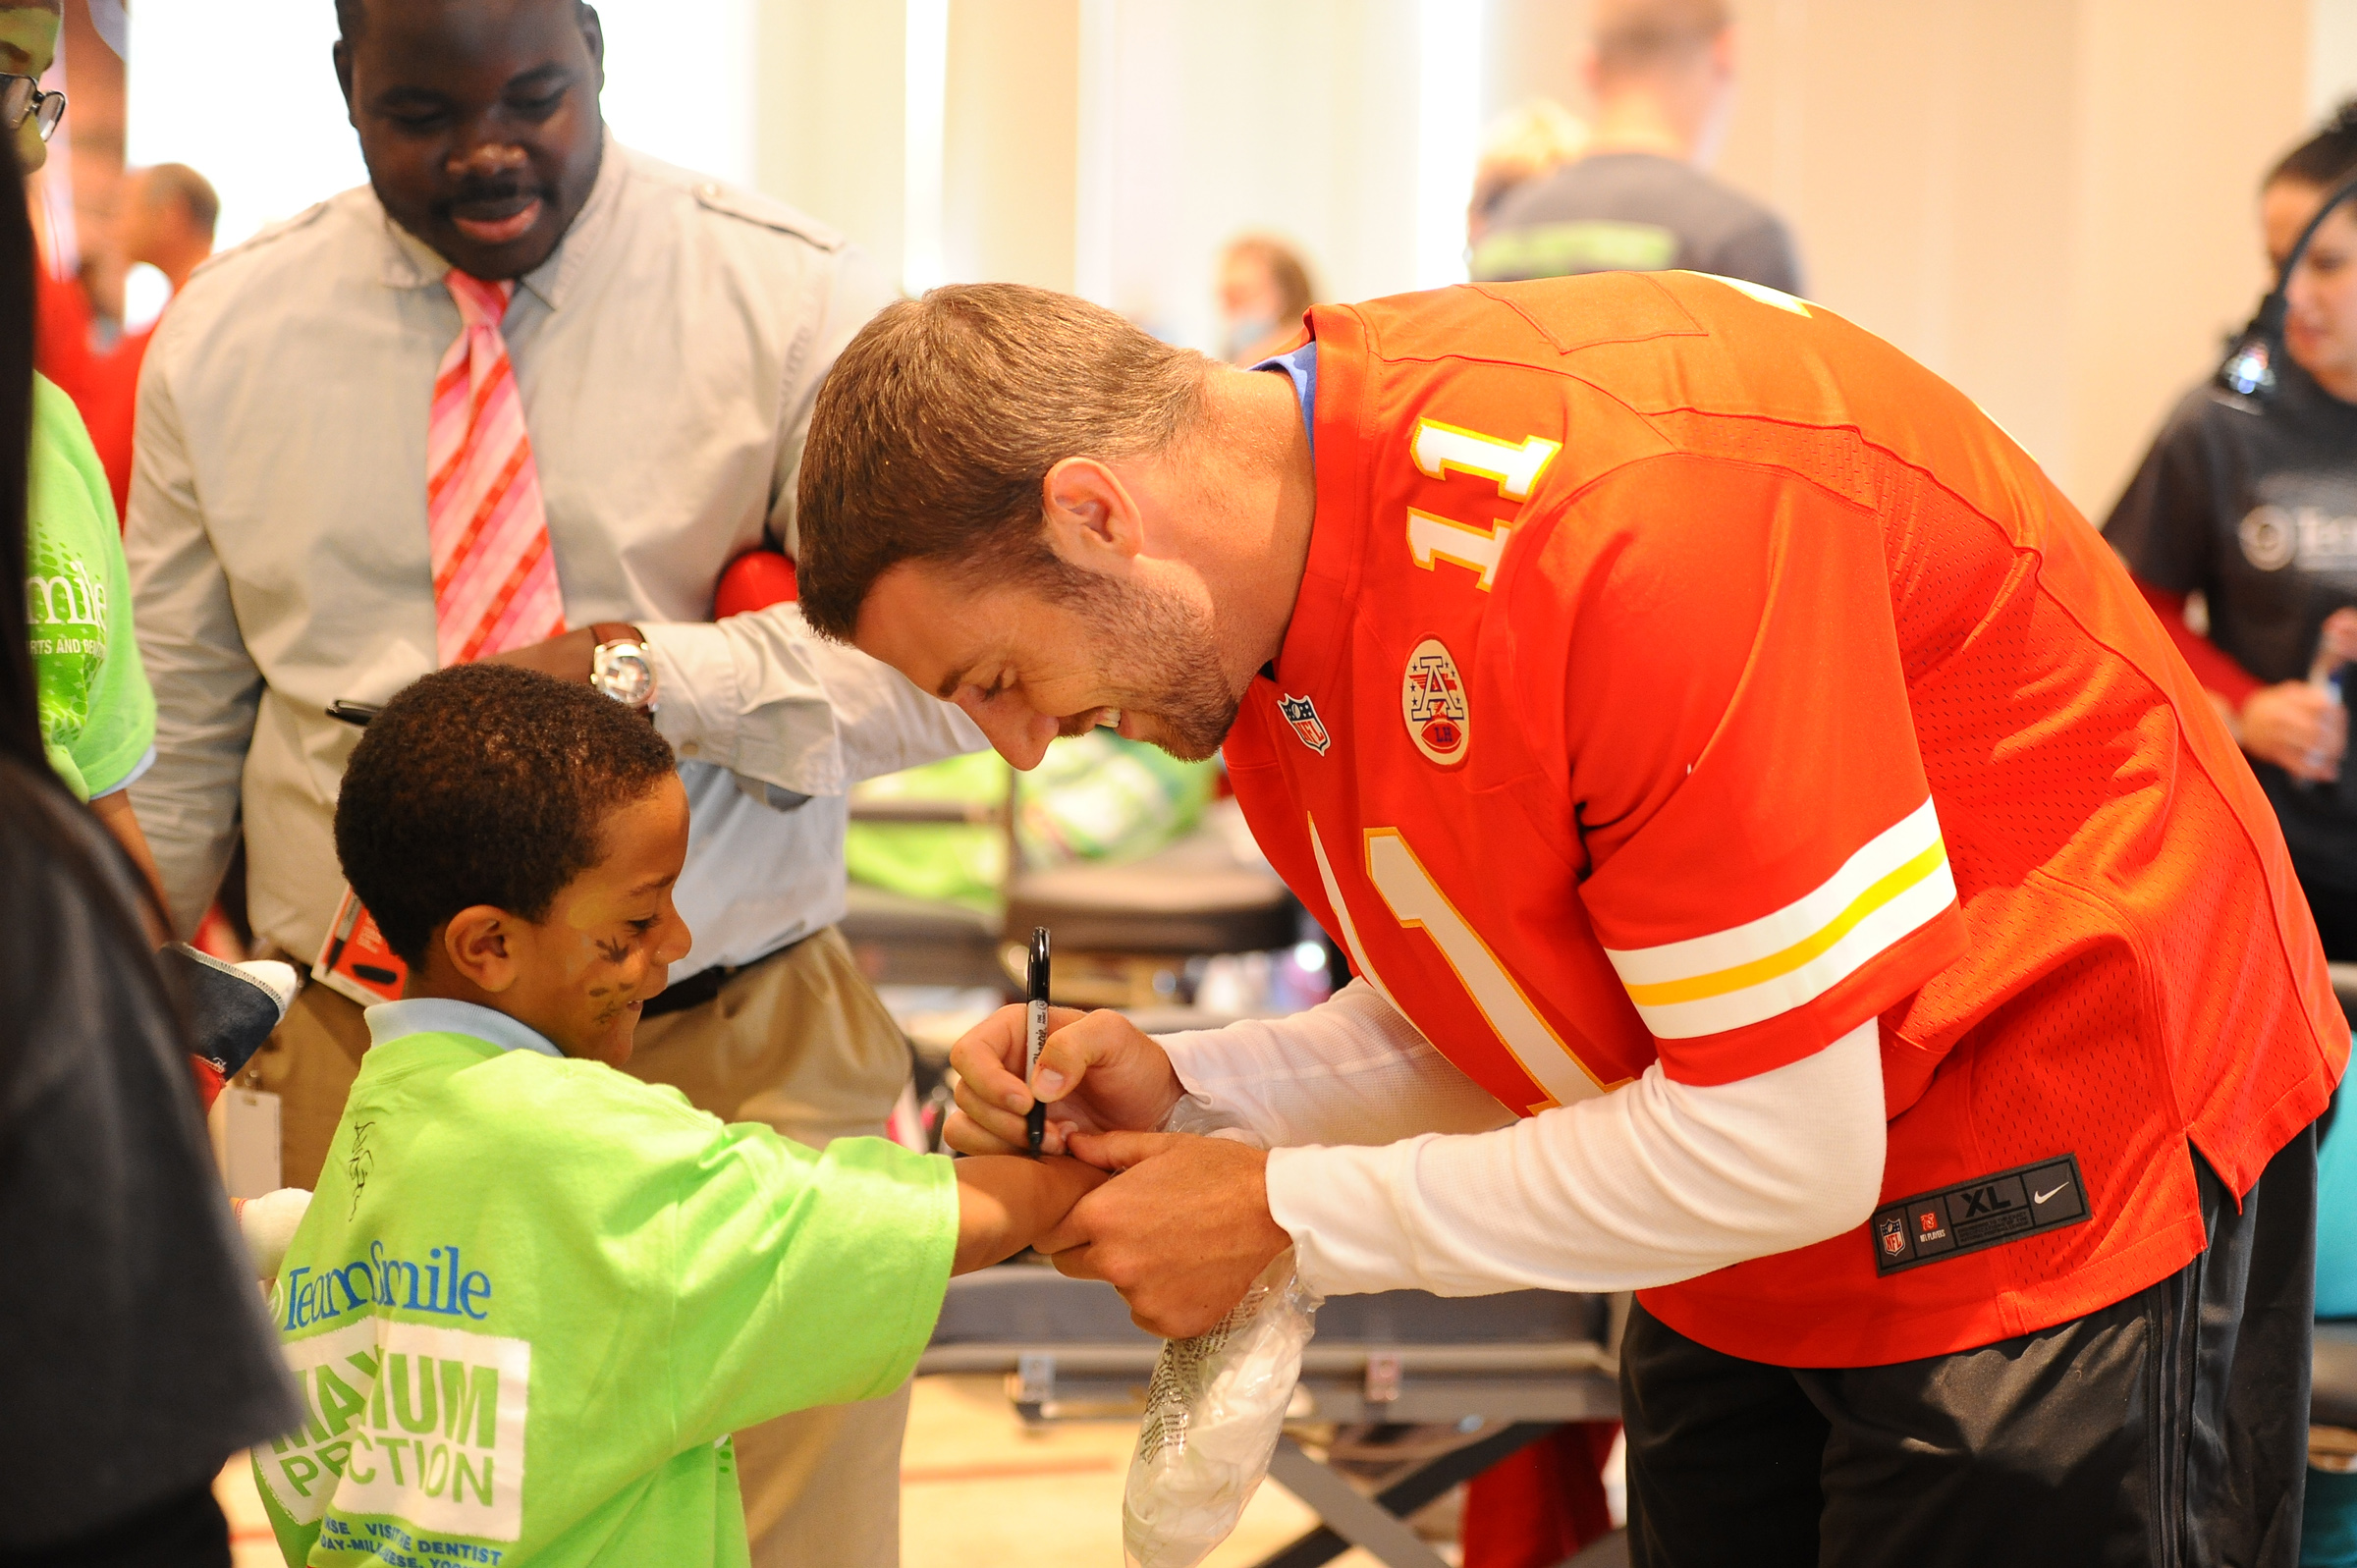 University of Utah alum Alex Smith, quarterback for the Kansas City Chiefs, is a leader on and off the field. Smith will give the 2014 commencement address at the U on May 1, 2014.